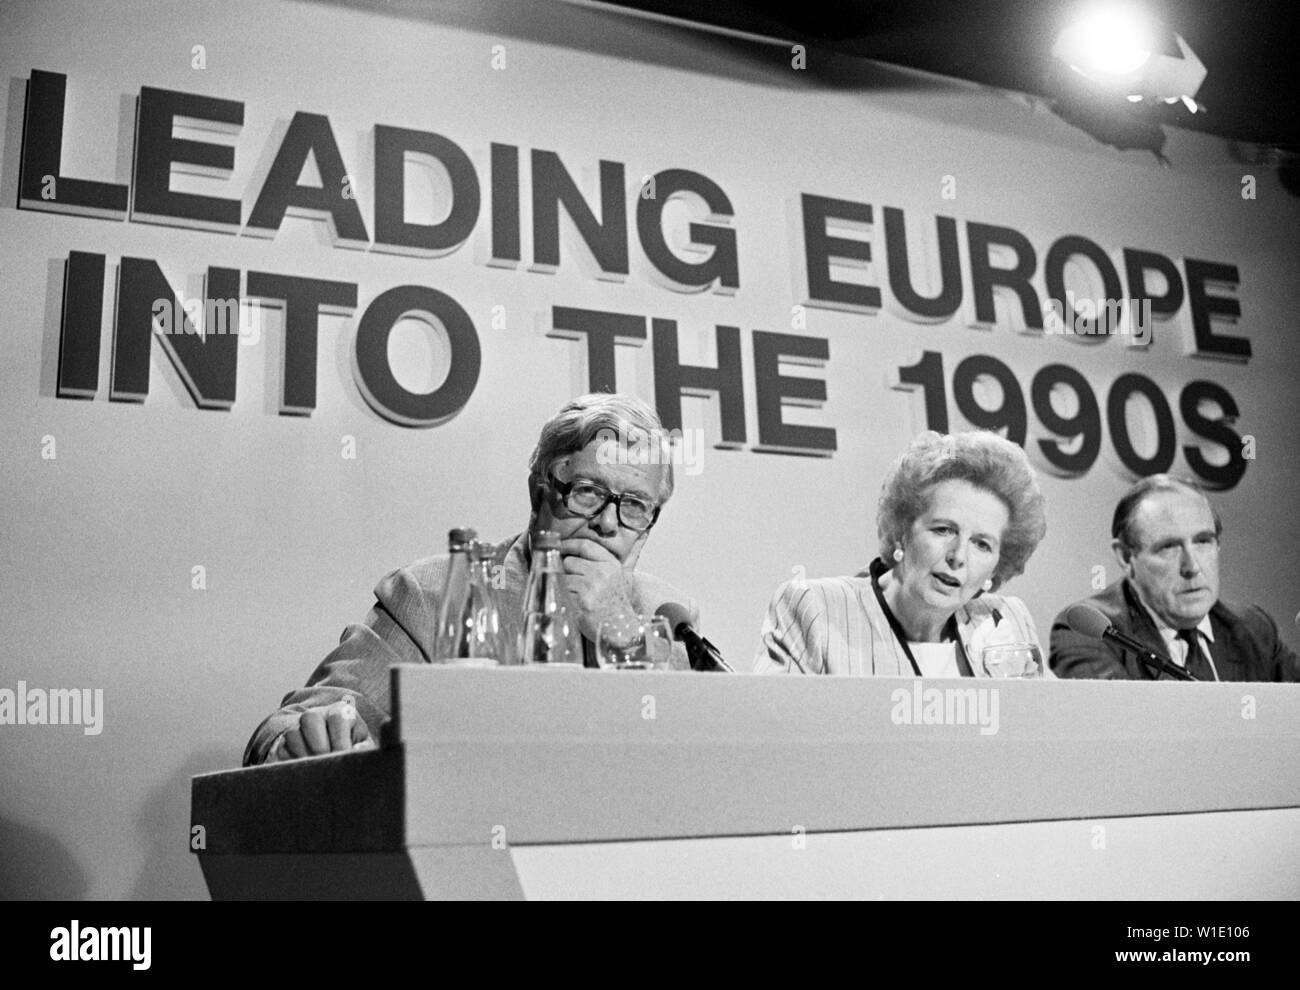 Foreign Secretary Sir Geoffrey Howe (l), prime Minister Margaret Thatcher and Conservative Party chairman Peter Brook at the Conservative Party's European Election Campaign Press Conference in London. - Stock Image